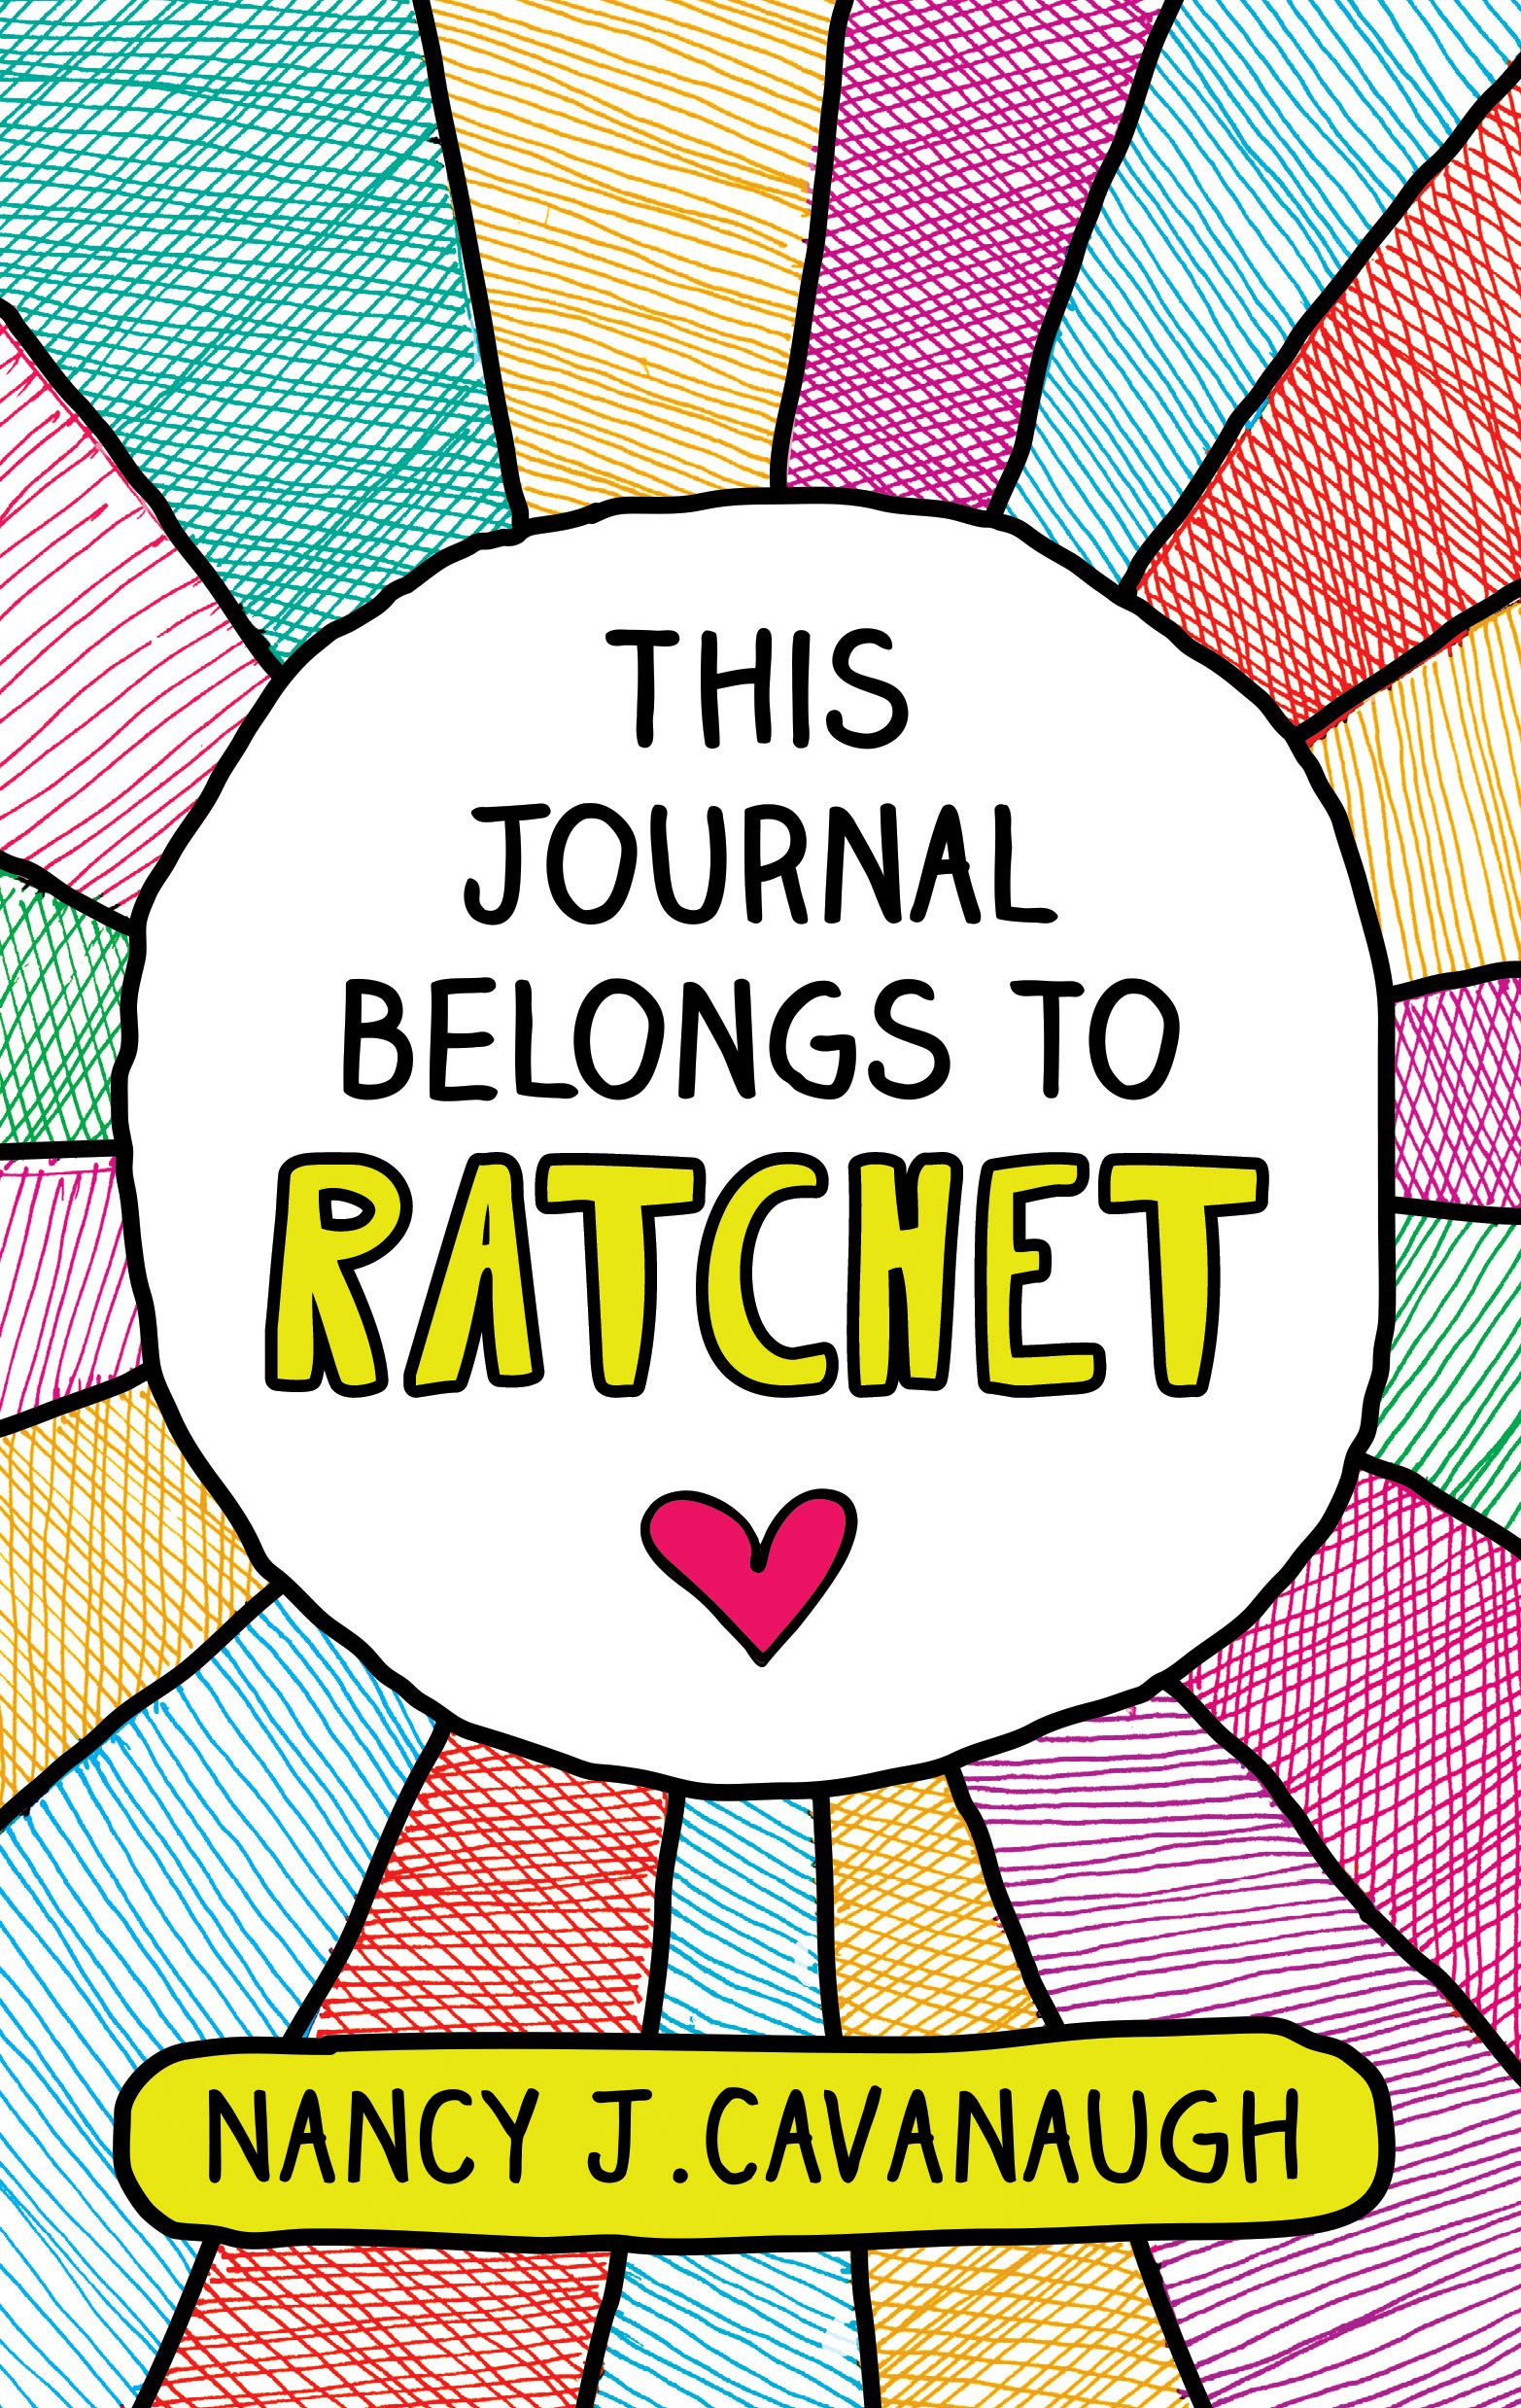 Image result for journal belongs to ratchet